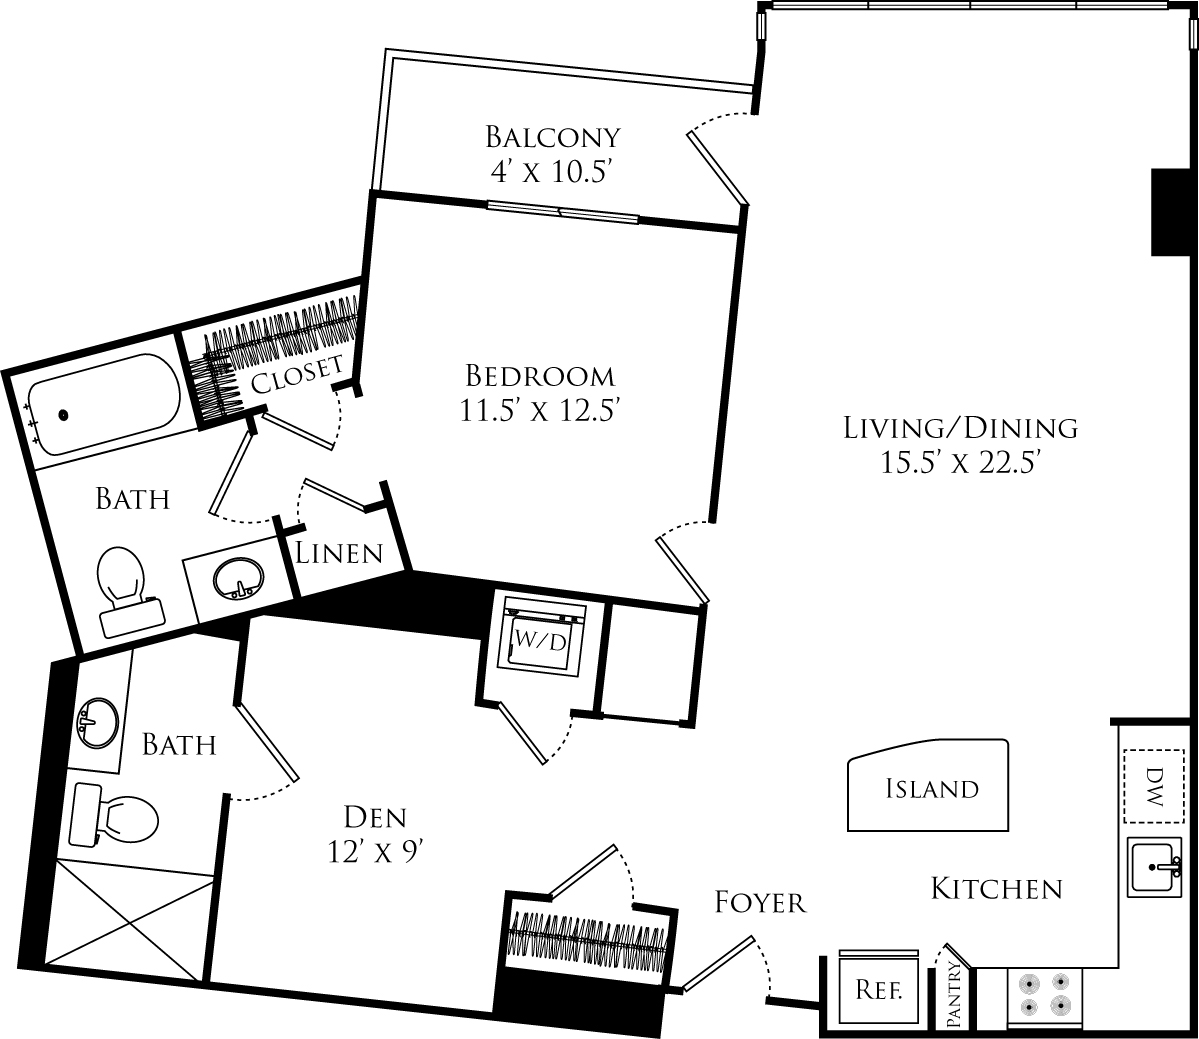 A2B floor plan with 1 bed, 1 den, 2 baths and is 974 square feet